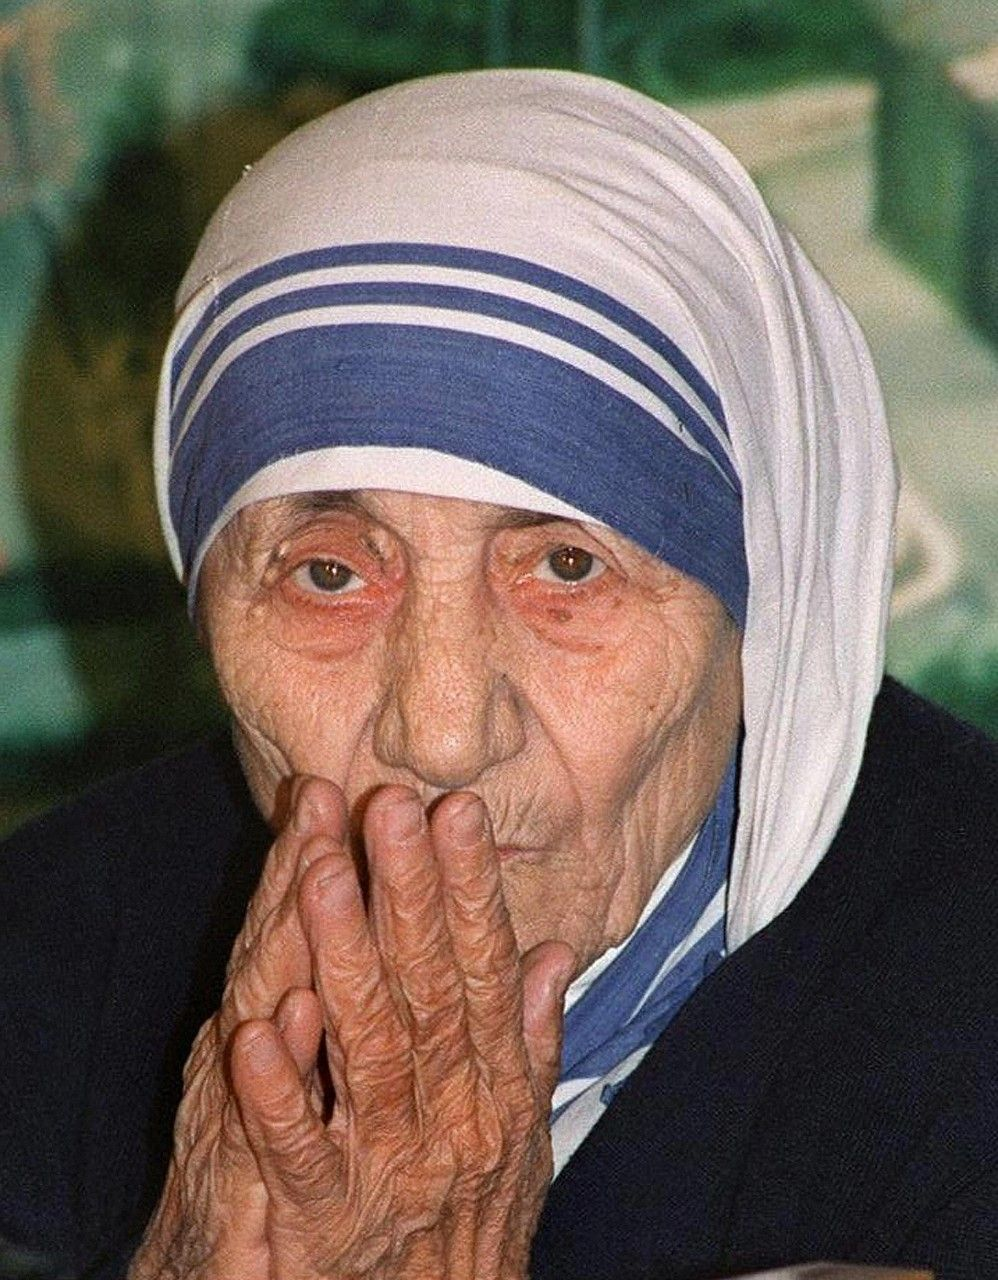 best ideas about mother teresa essay inspiring 17 best ideas about mother teresa essay inspiring people mother teresa history and mother teresa